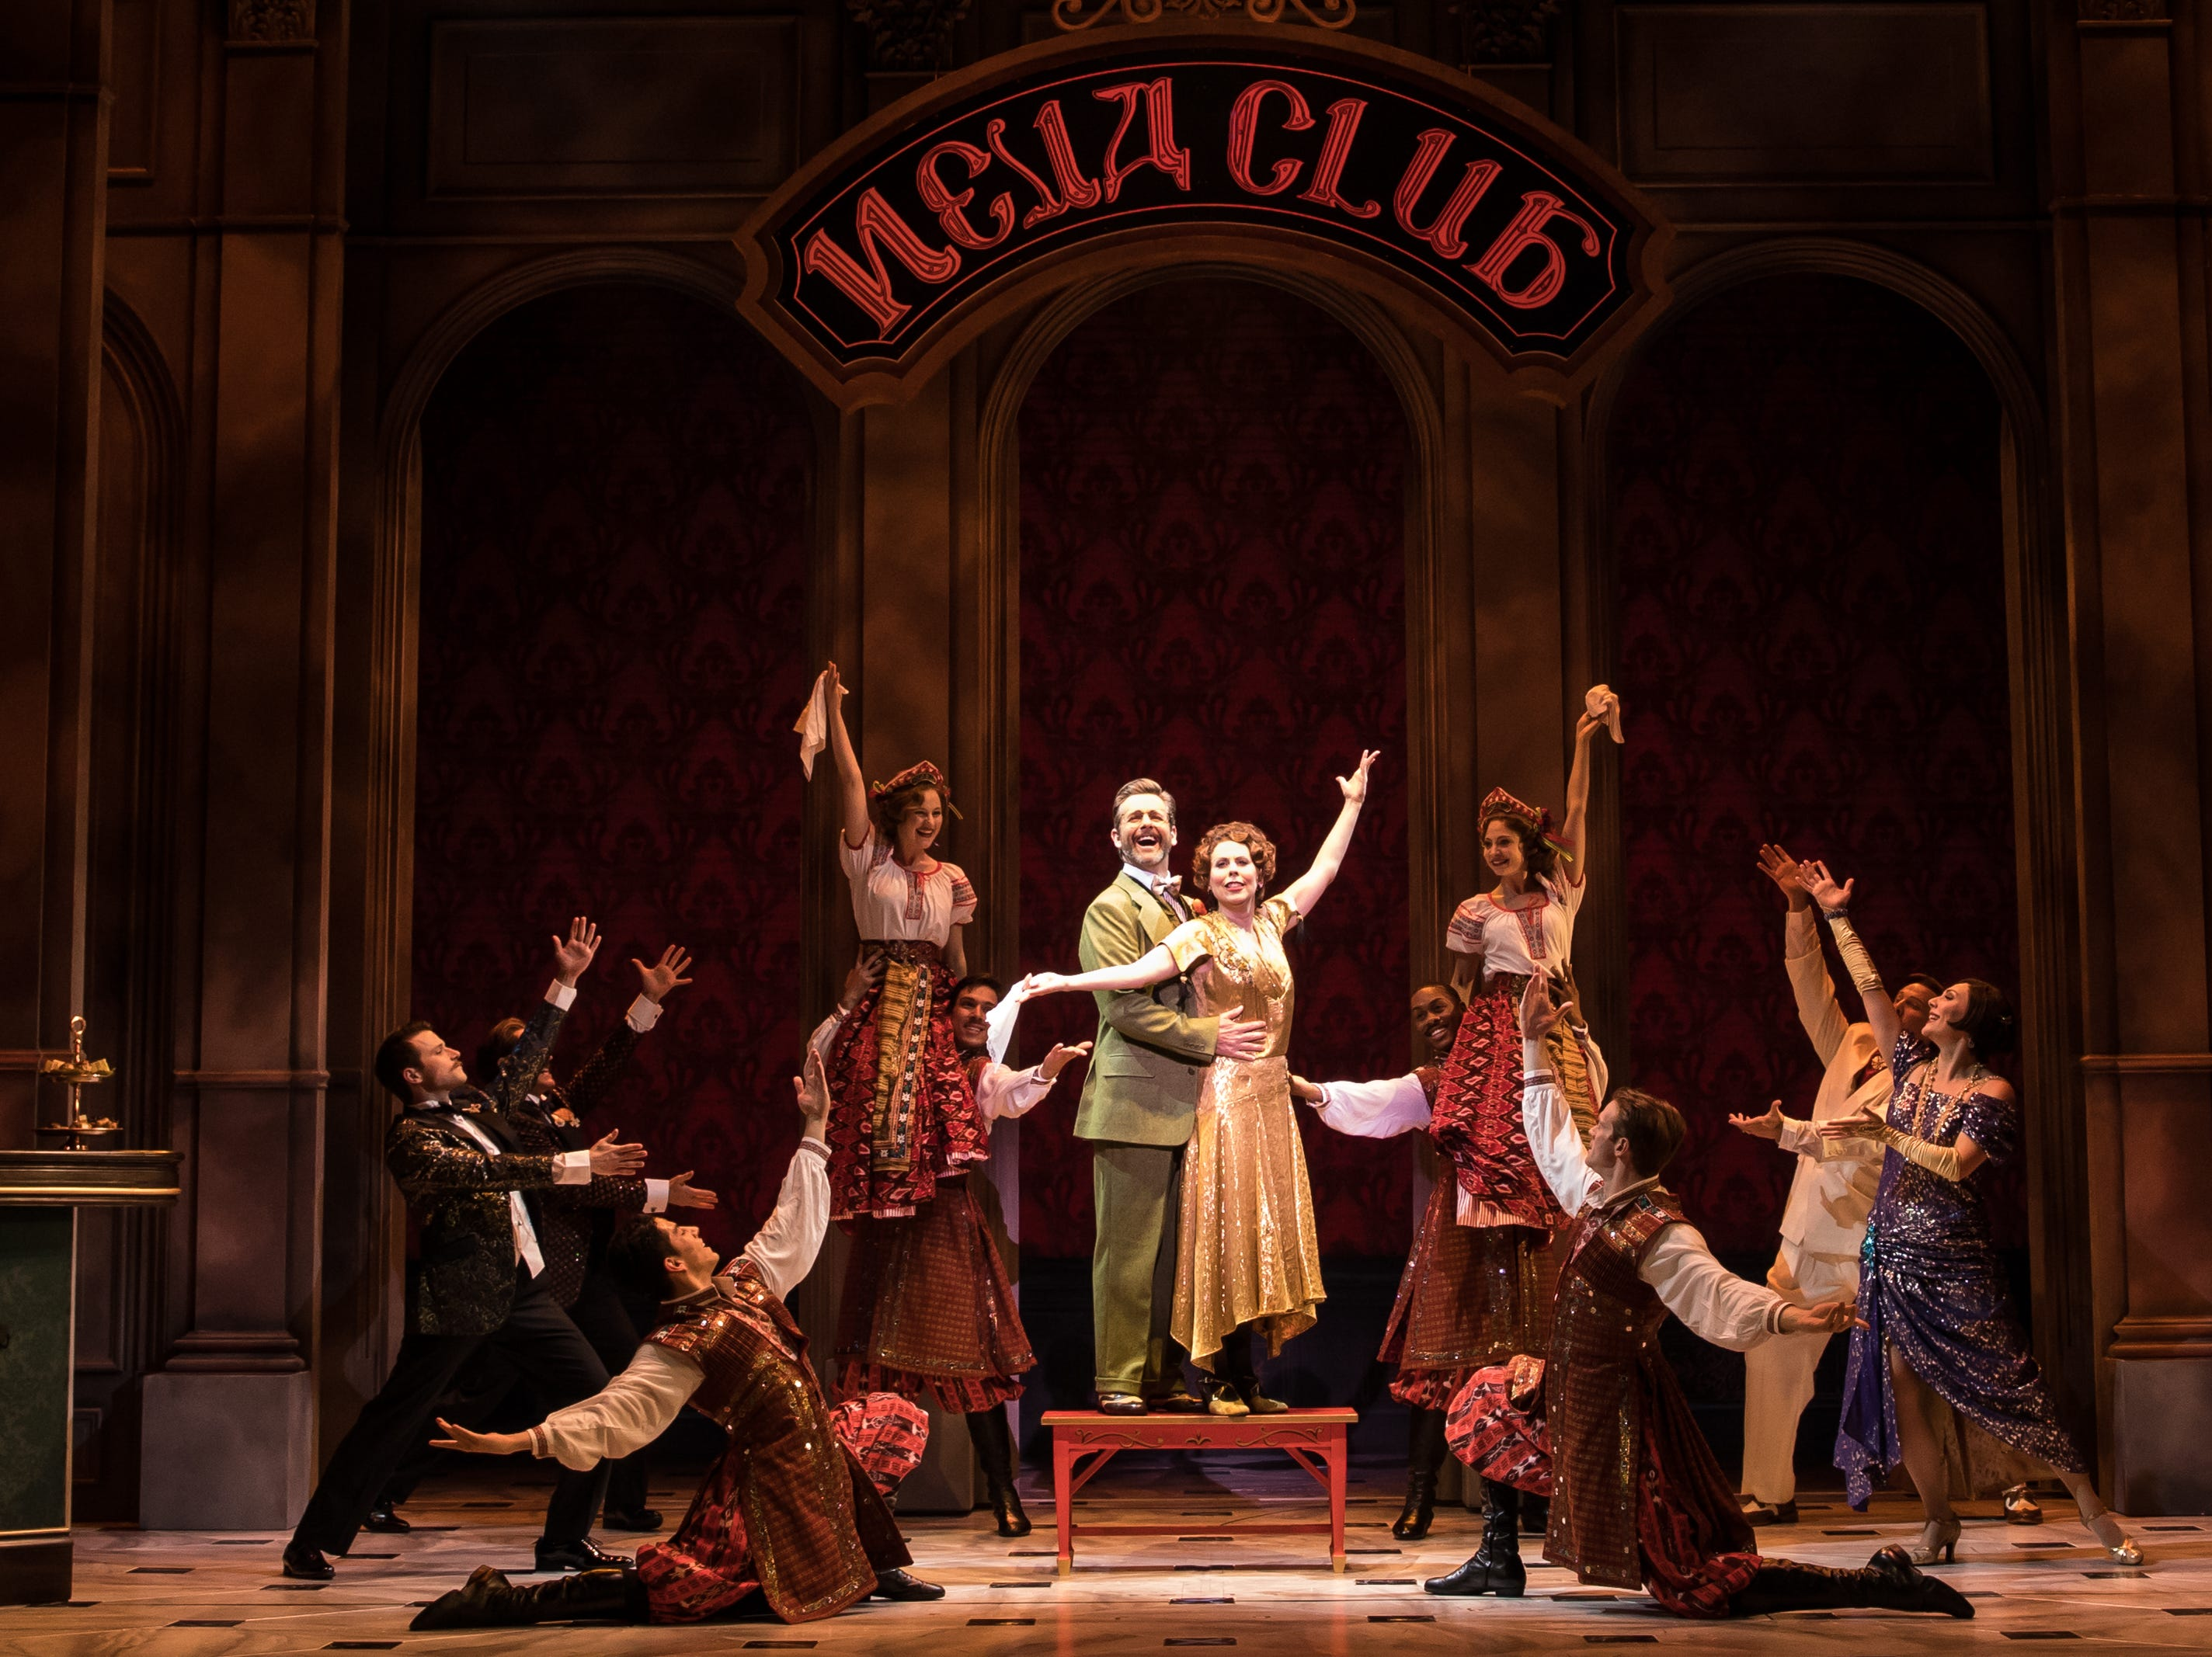 """Edward Staudenmayer, Vlad Tari Kelly Countless Lily And The Company Of The National Tour Of """"Anastasia."""""""